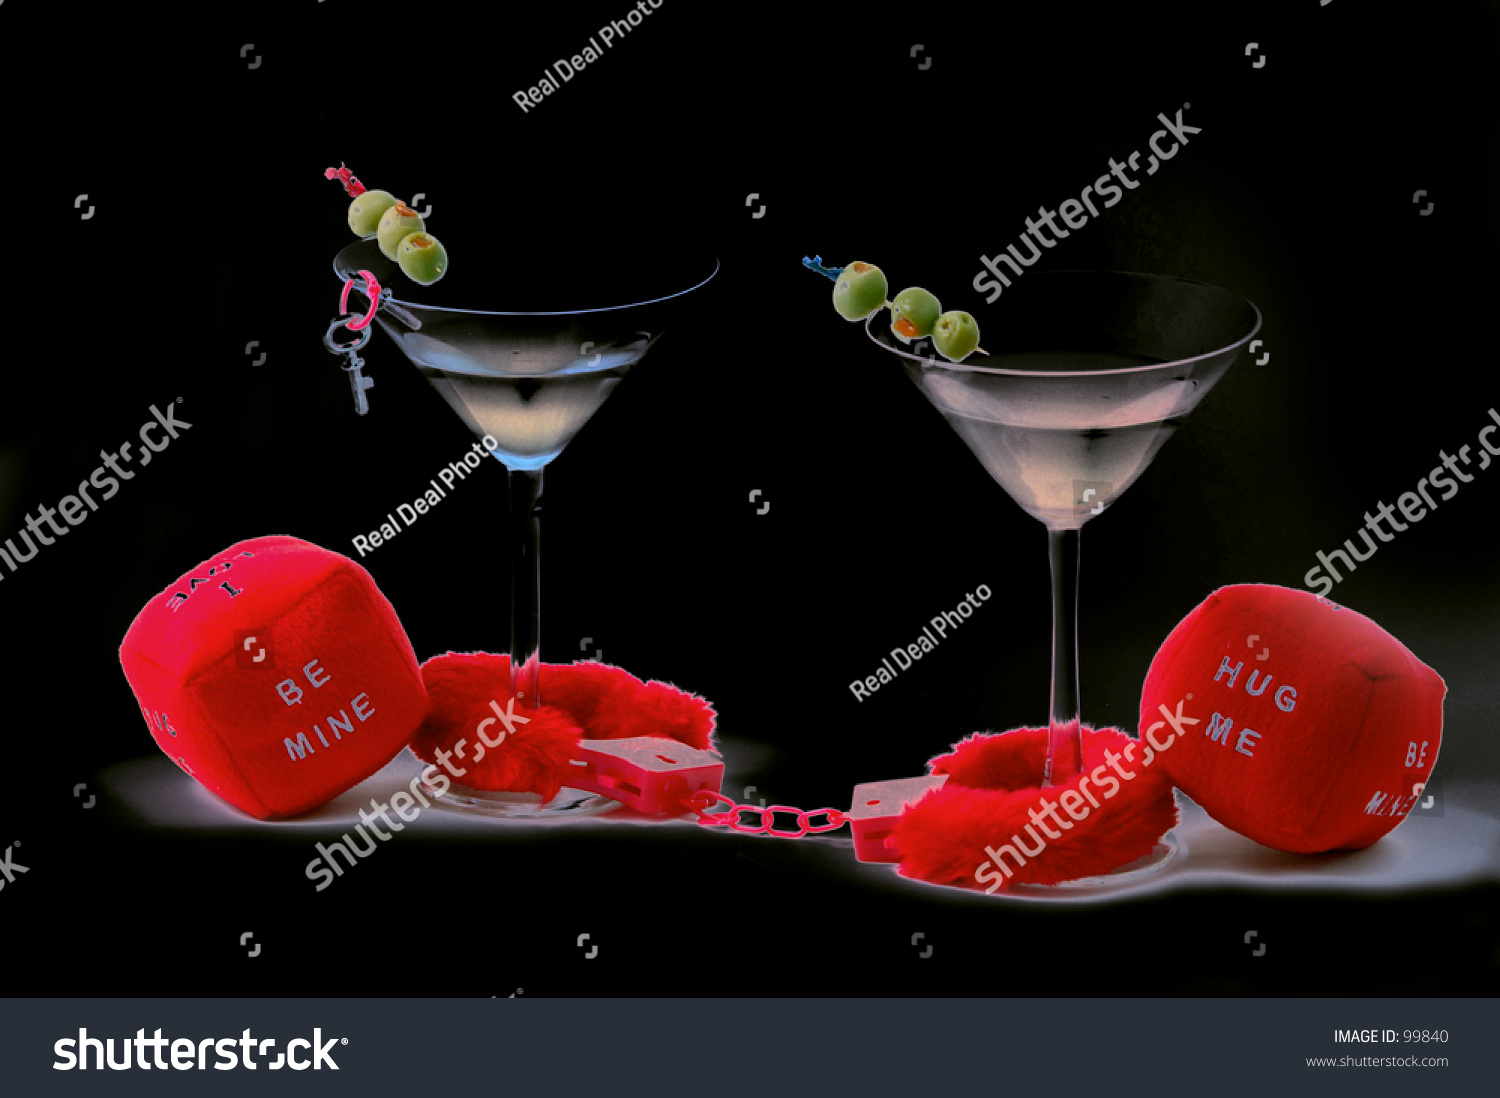 Valentines Day Image Depicting Concept Caught Stock Photo 99840 Shutterstock